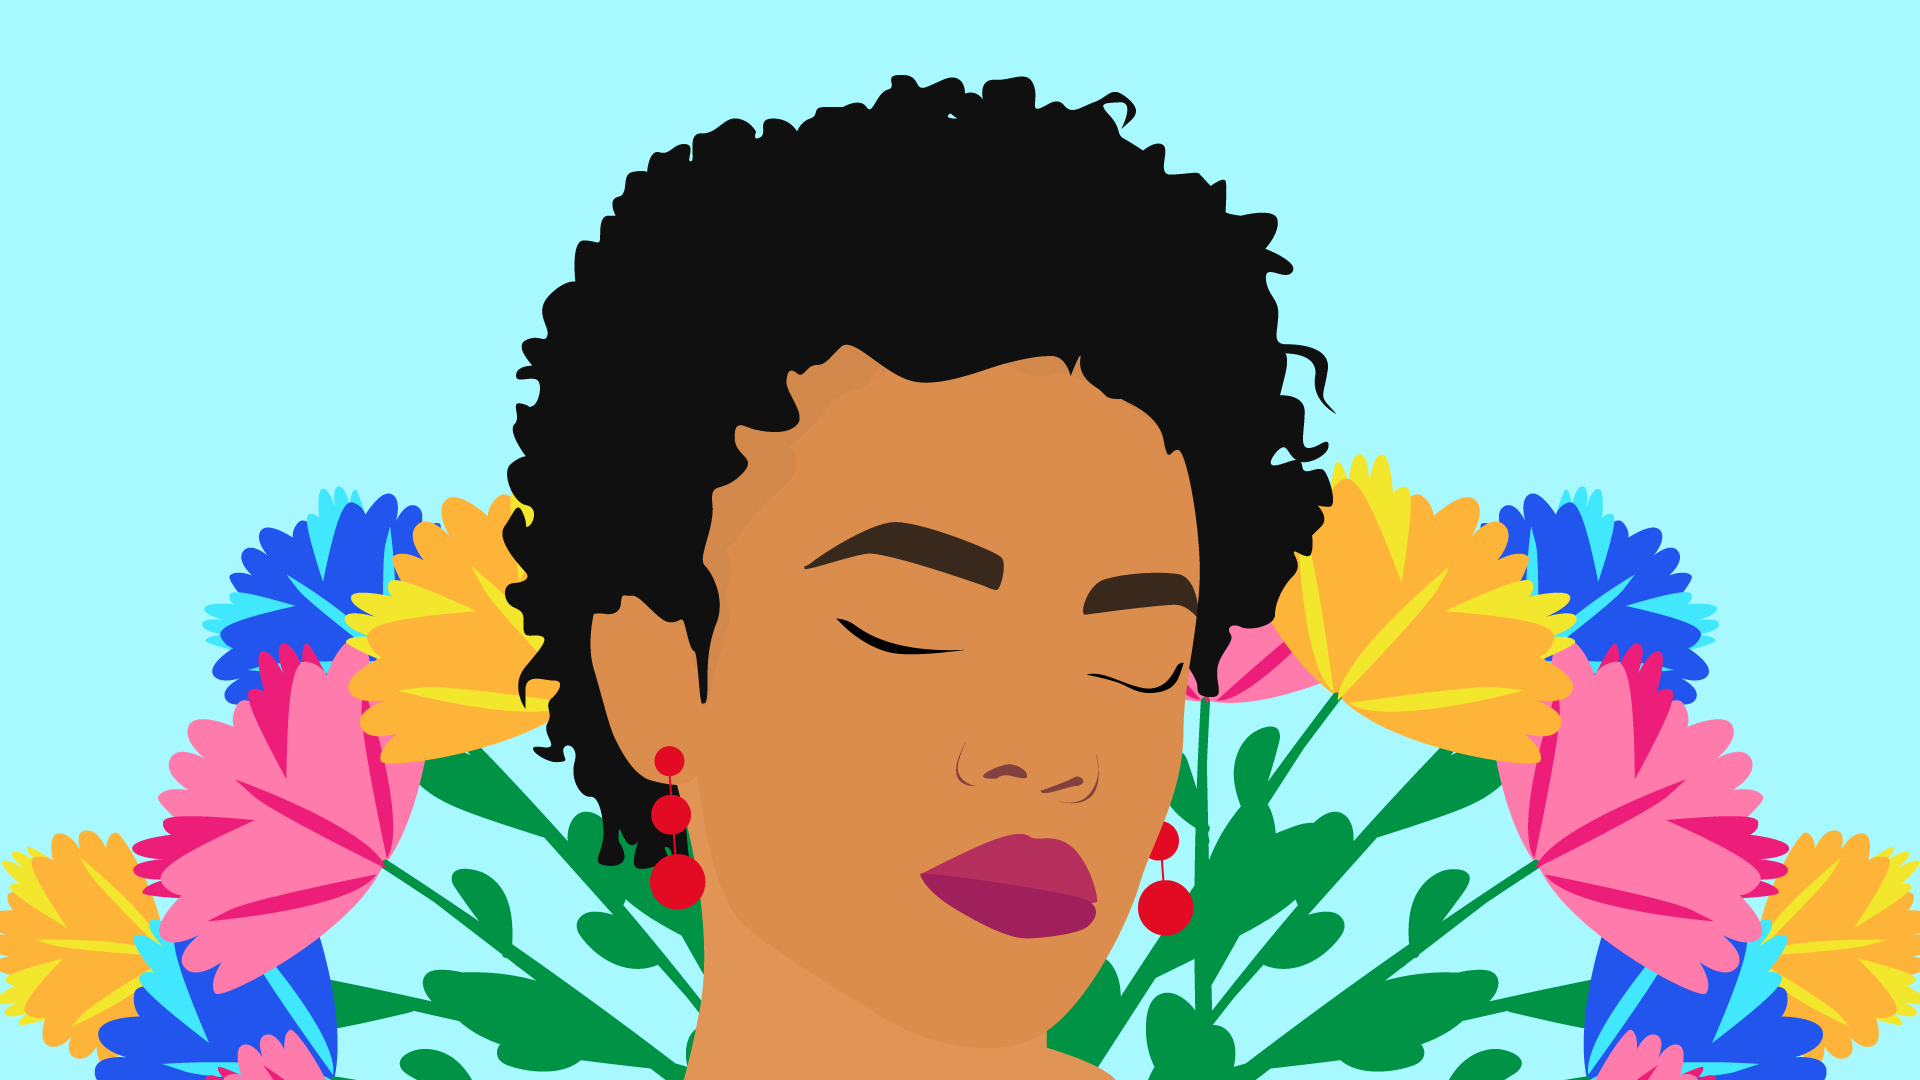 solitude Black woman with flowers